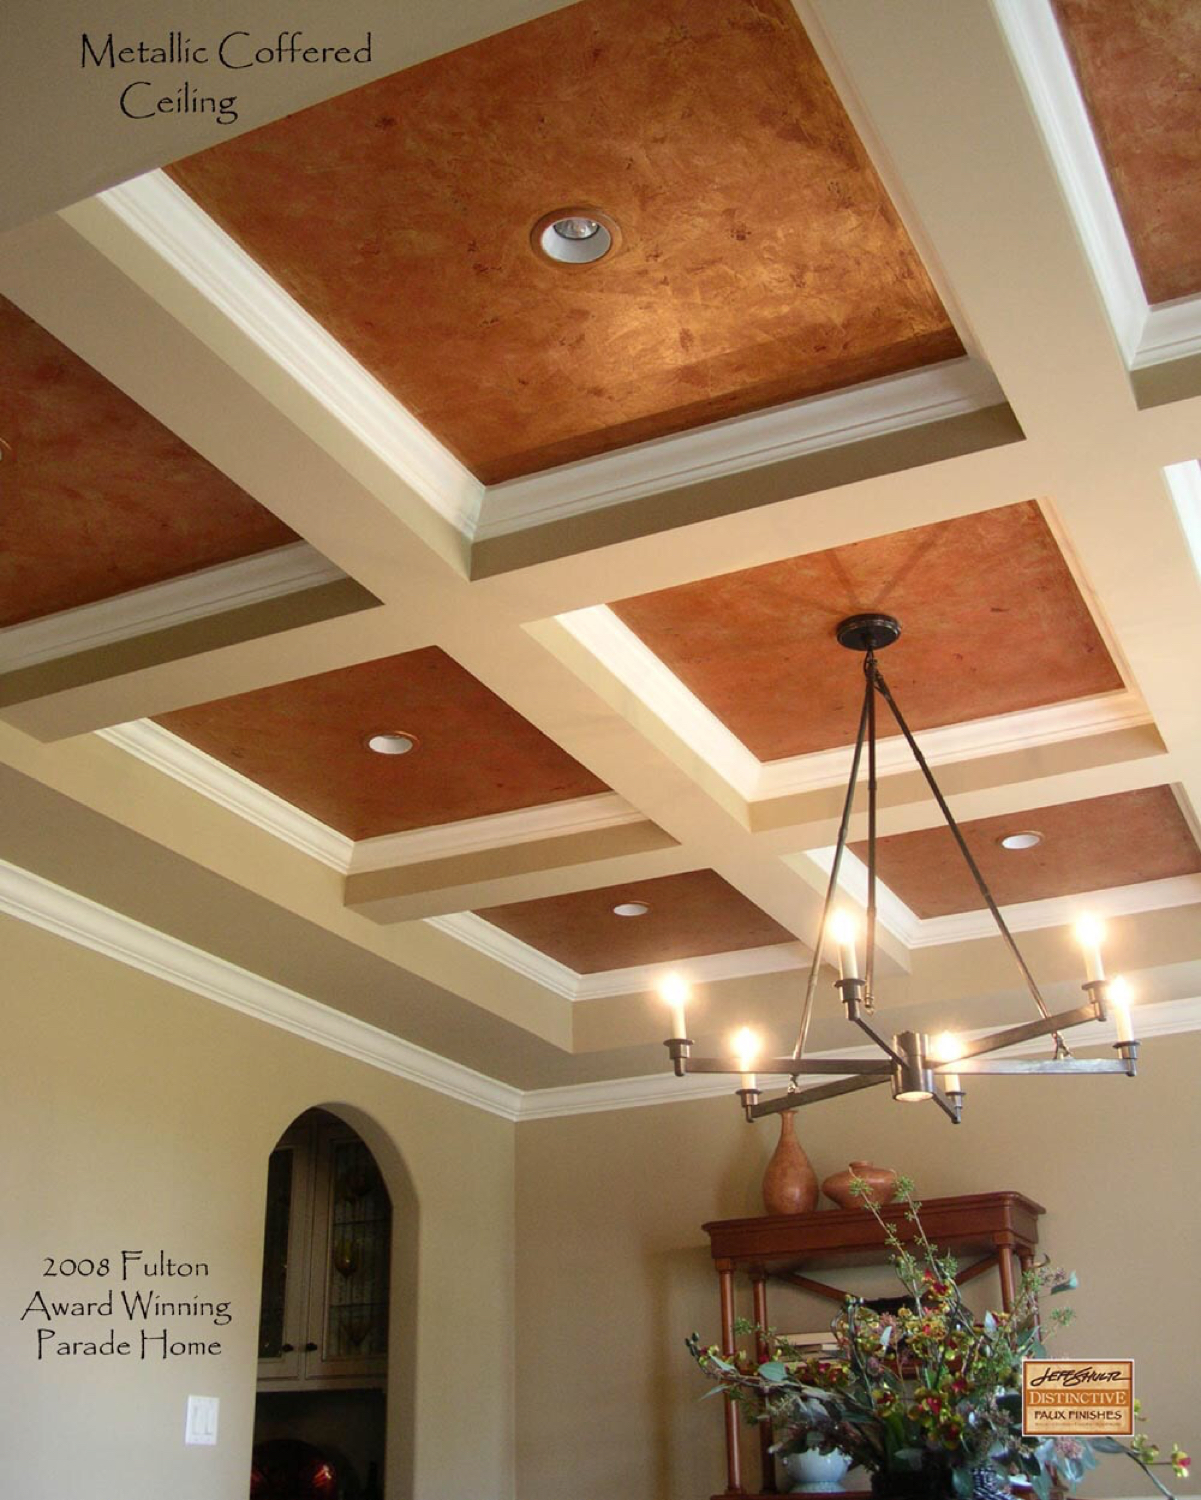 hp-c-modelhomecoffered.jpg